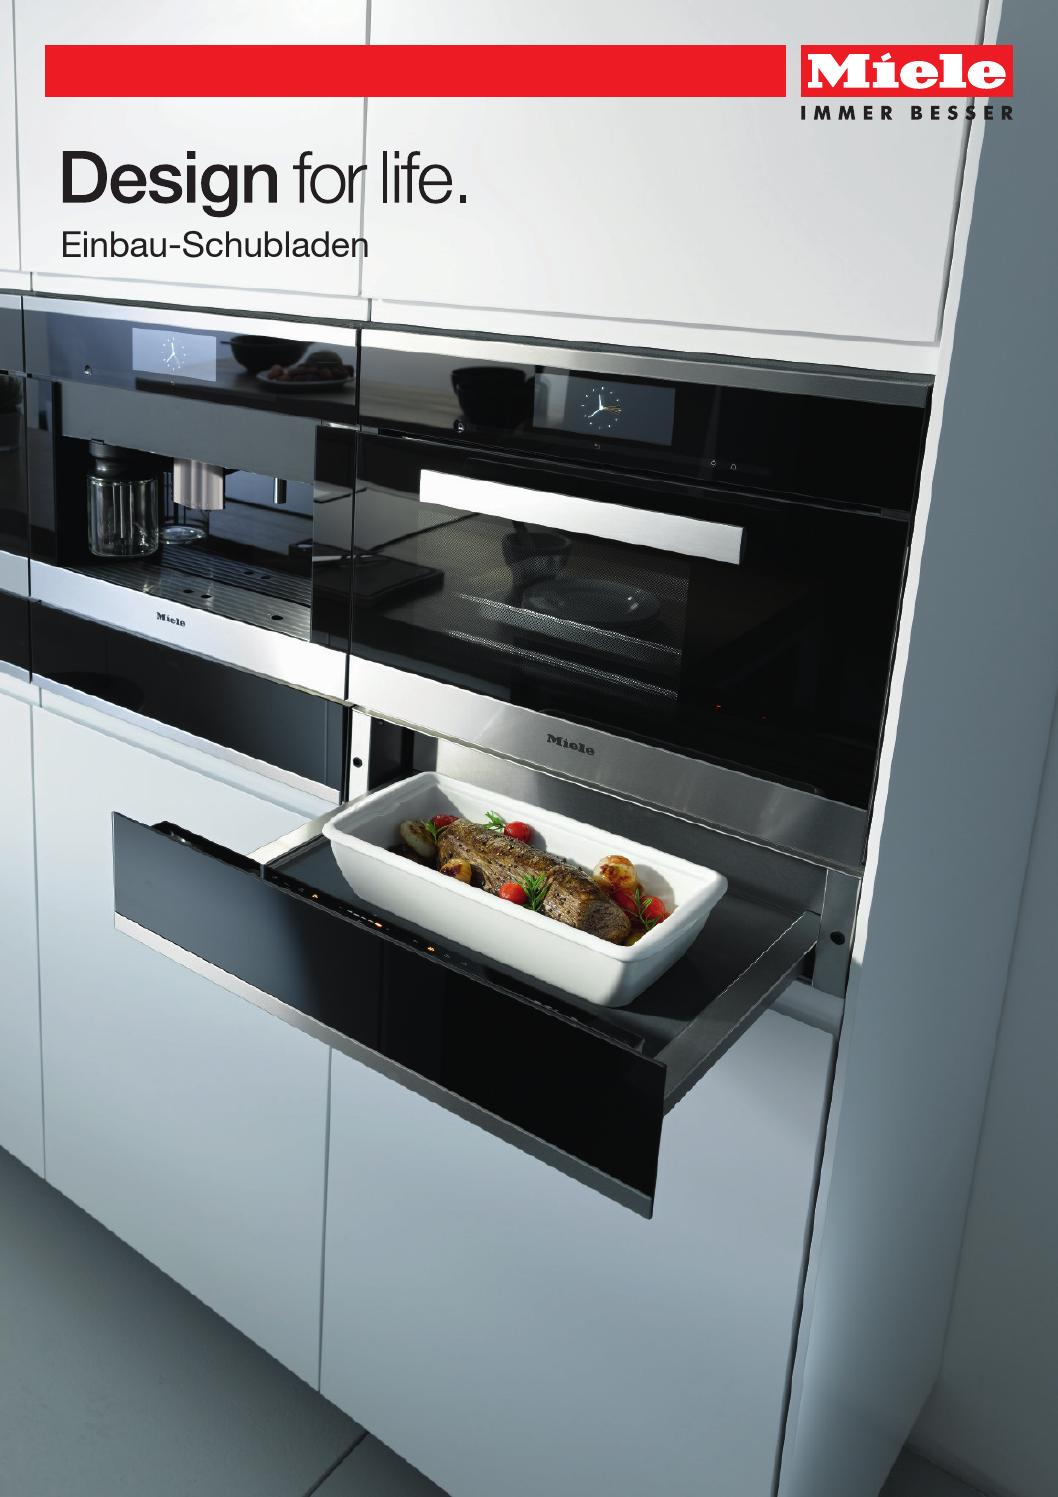 miele produktkatalog einbau schubladen ch de by miele issuu. Black Bedroom Furniture Sets. Home Design Ideas